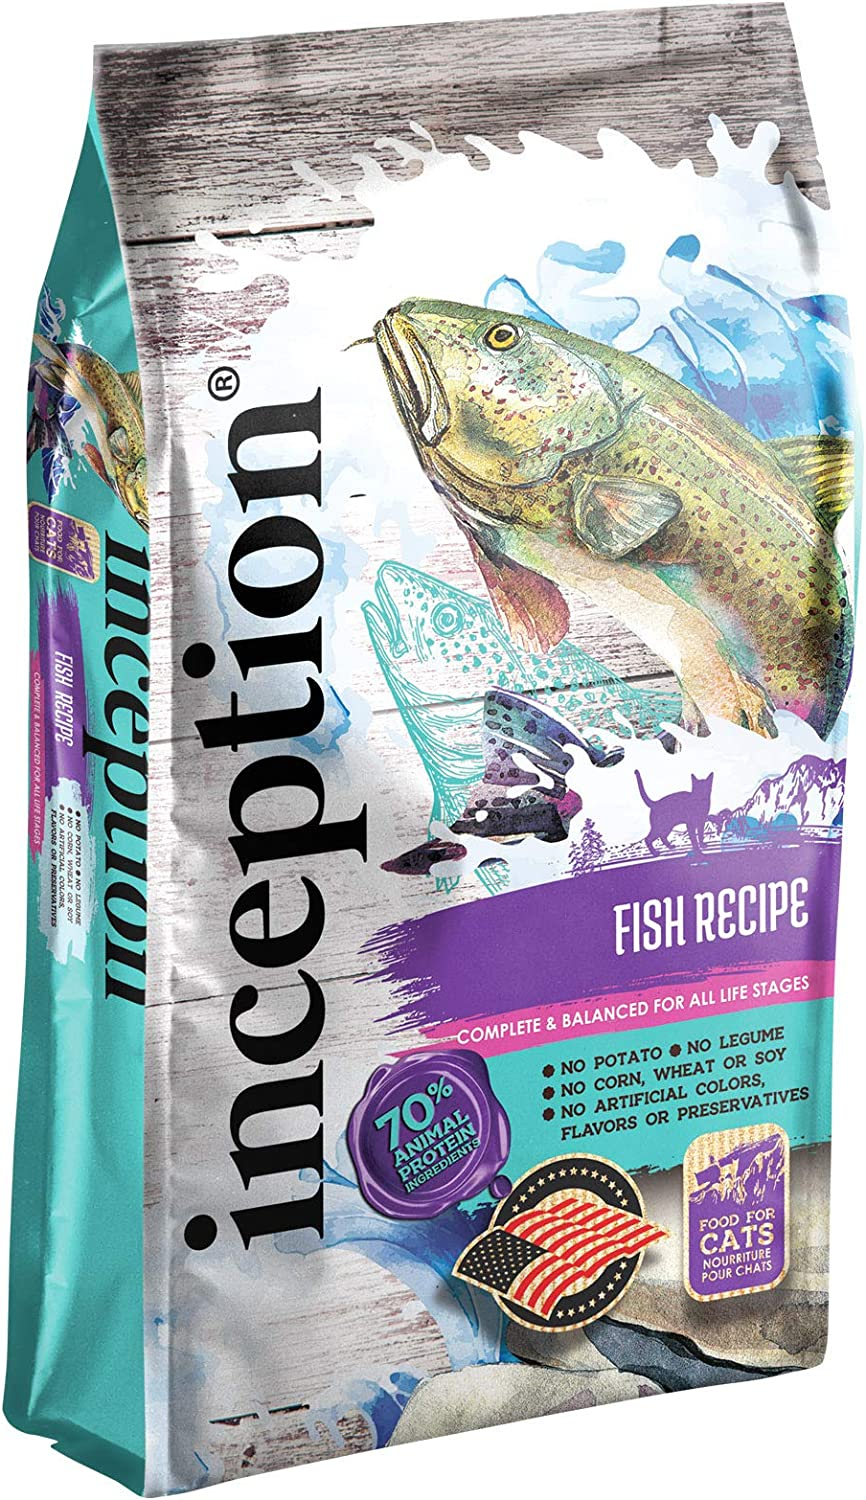 Inception Dry Cat Food Fish Recipe – Complete and Balanced Cat Food – Meat First Legume Free Dry Cat Food – 13.5 lb. Bag